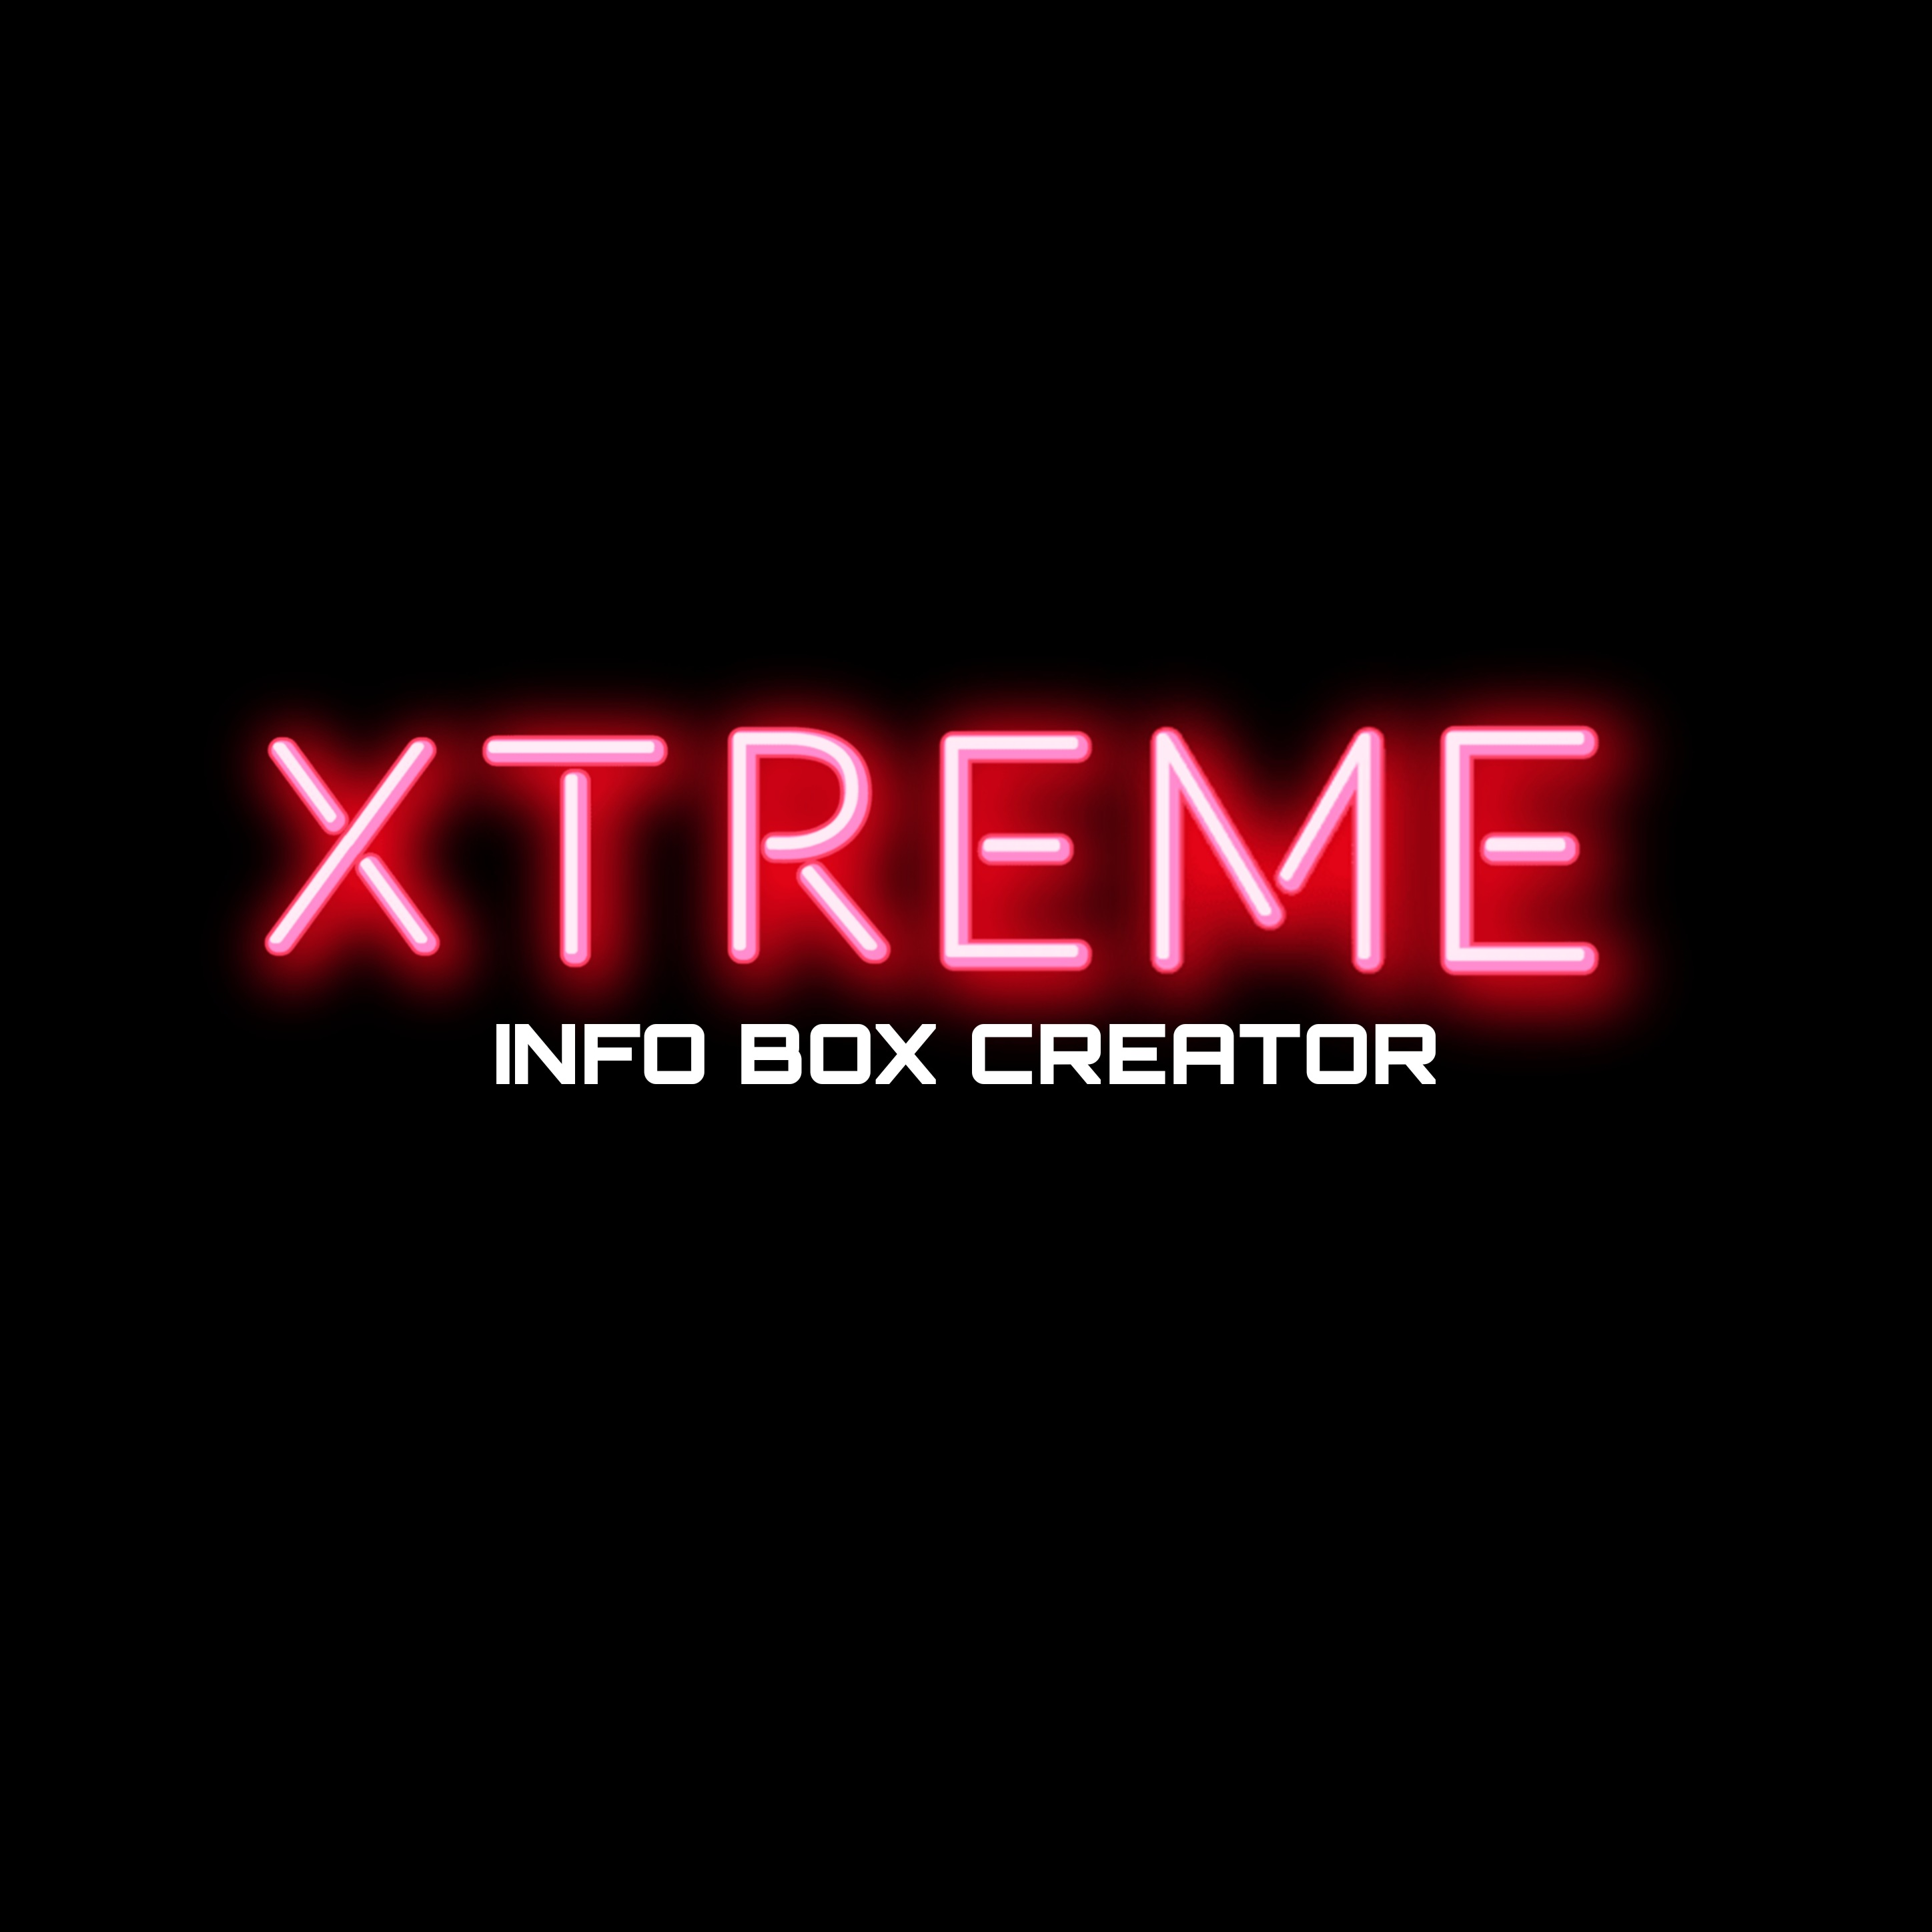 Xtreme Info Box Creator can help to create little box of information i.e. hints,  tips,  tricks